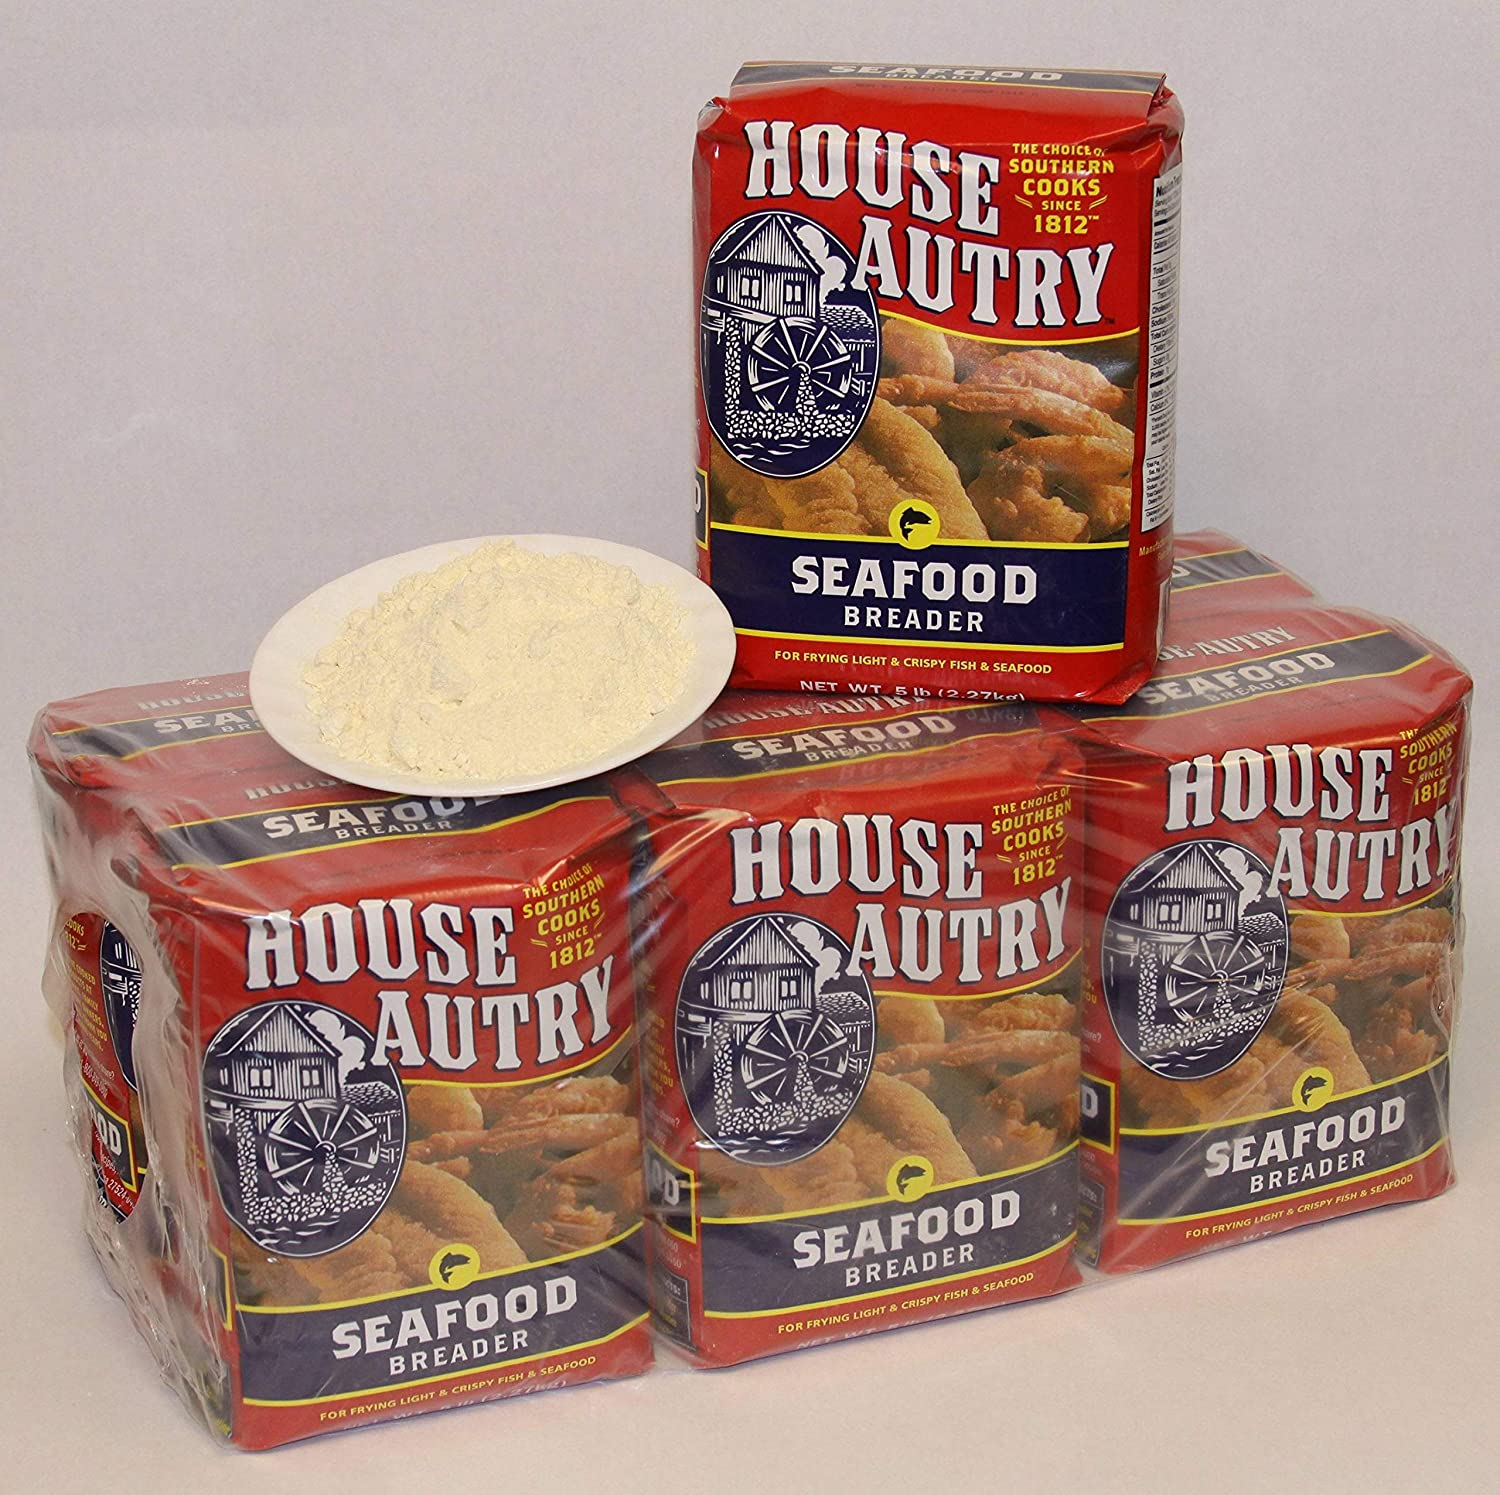 House Autry Max Finally popular brand 42% OFF Seafood Breader 5 pound per -- 6 case